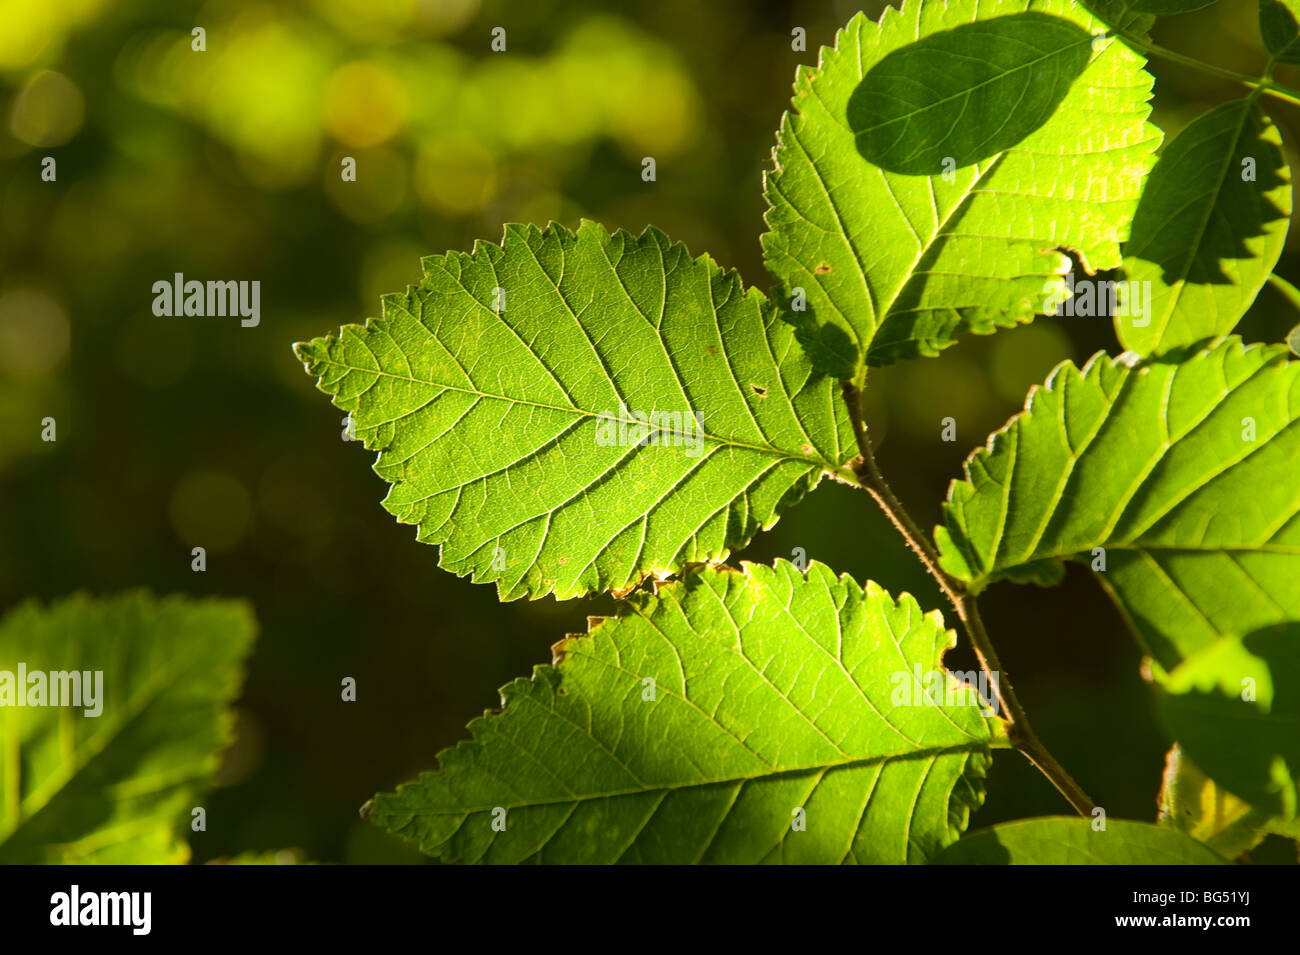 Backlit green leaves - Stock Image